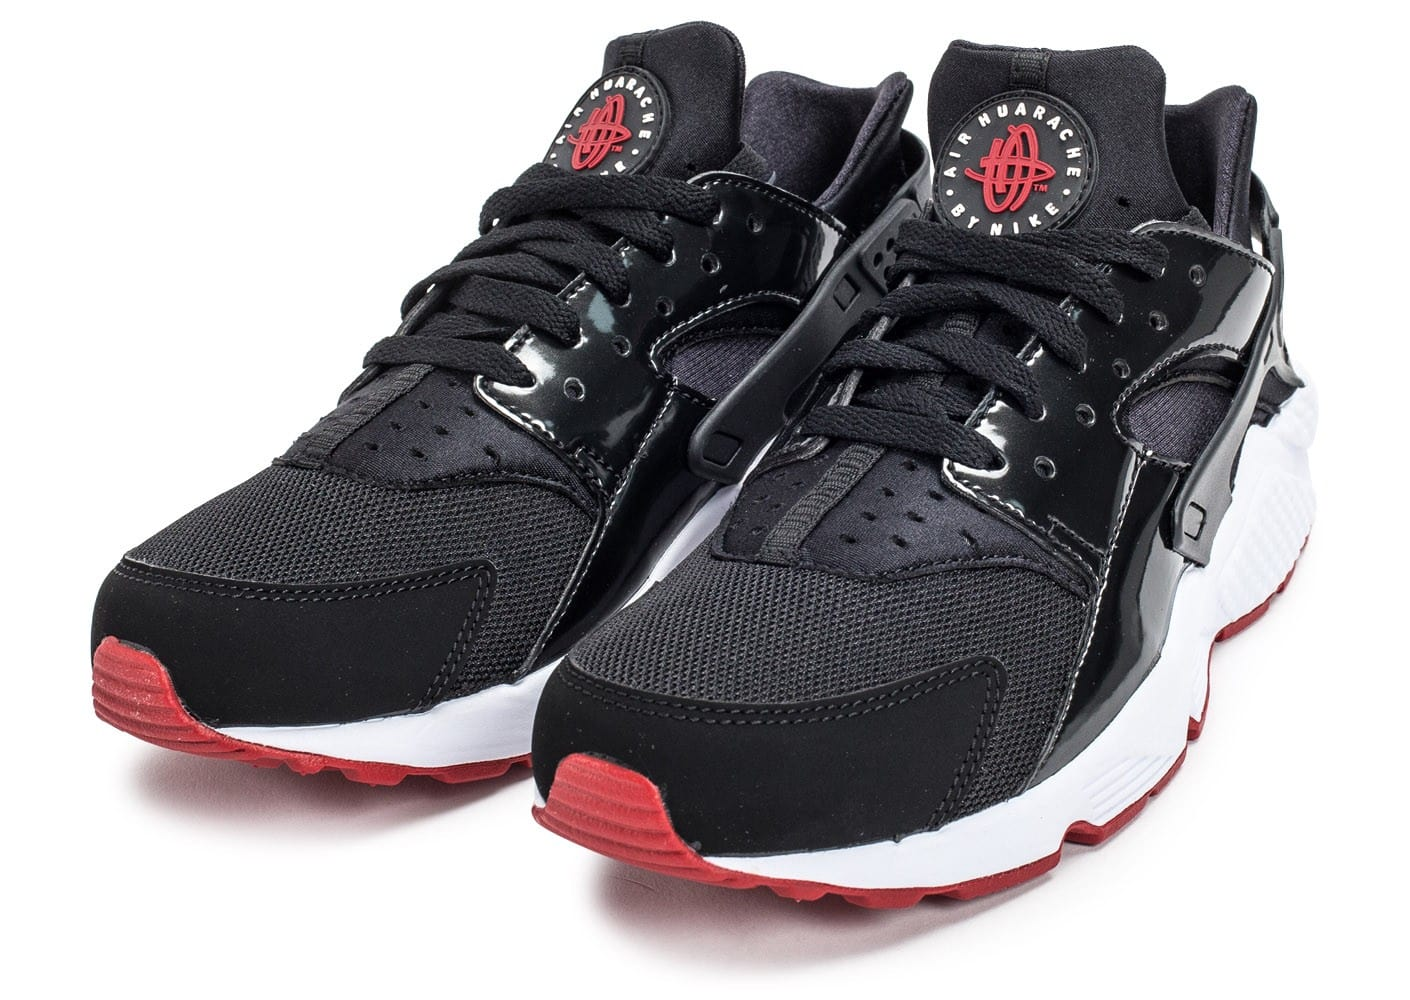 Nike Air Huarache Run Patent Leather Pack Chaussures